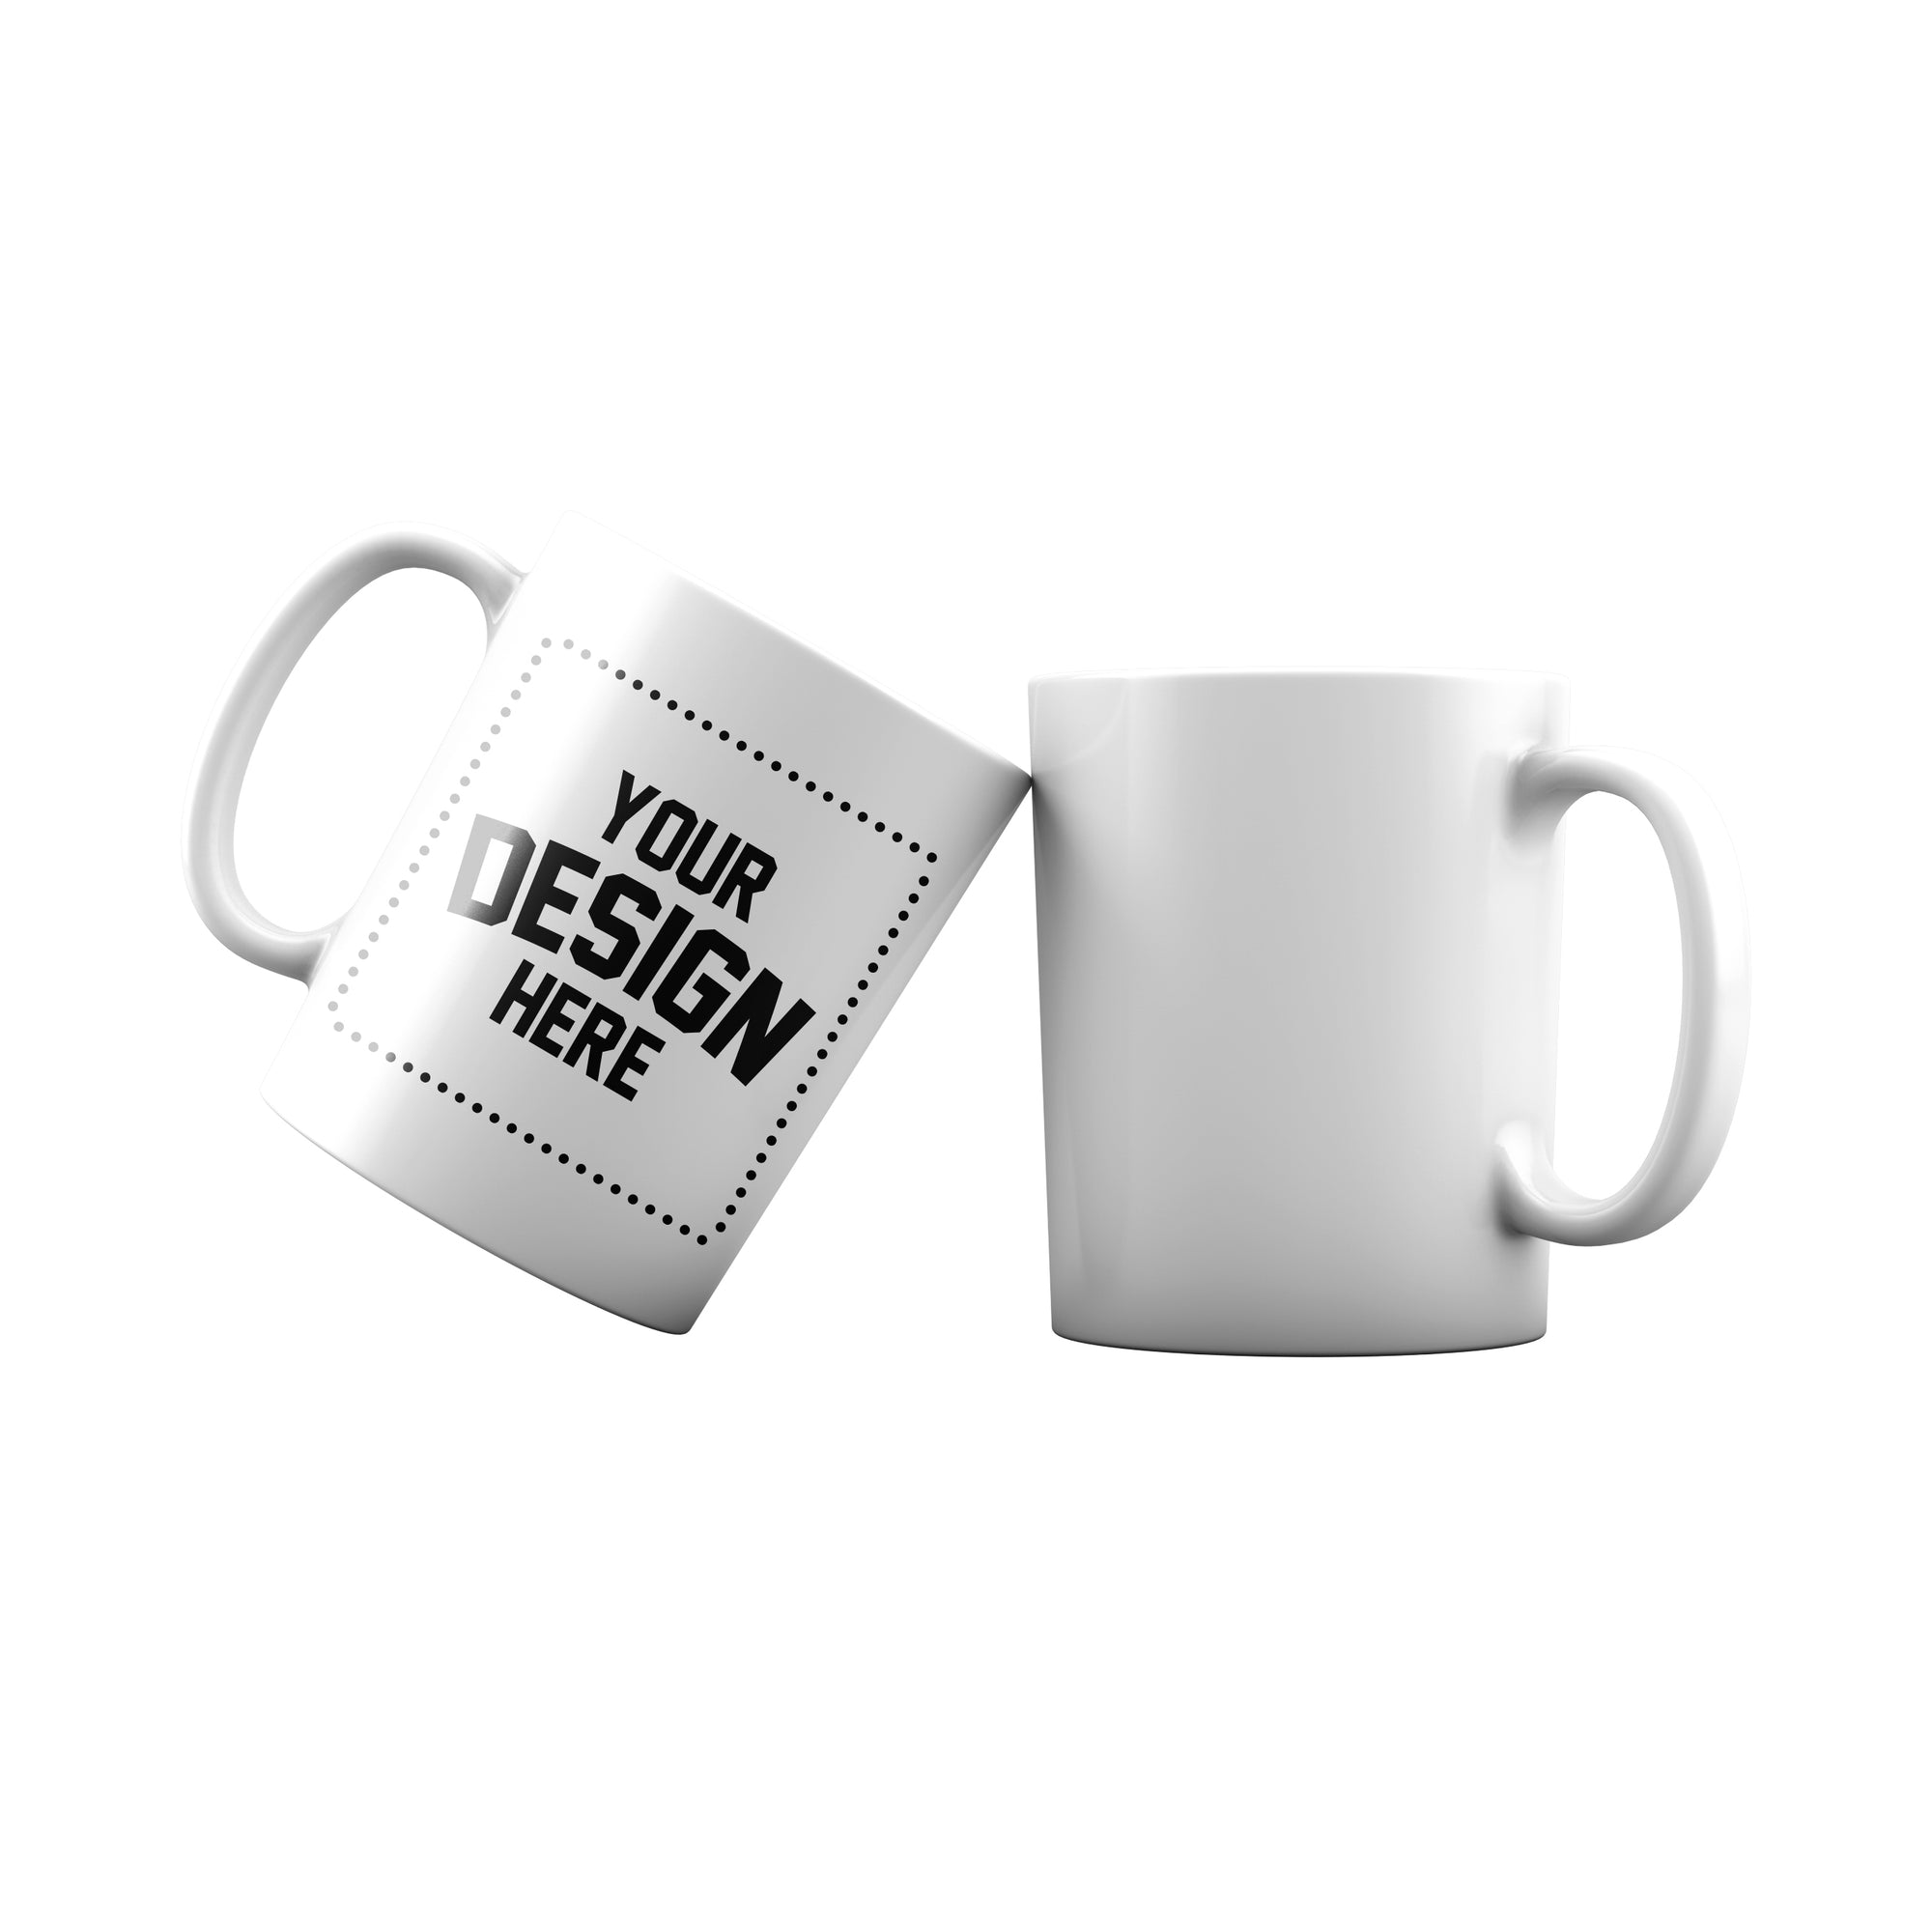 Custom Your Own Design Mug